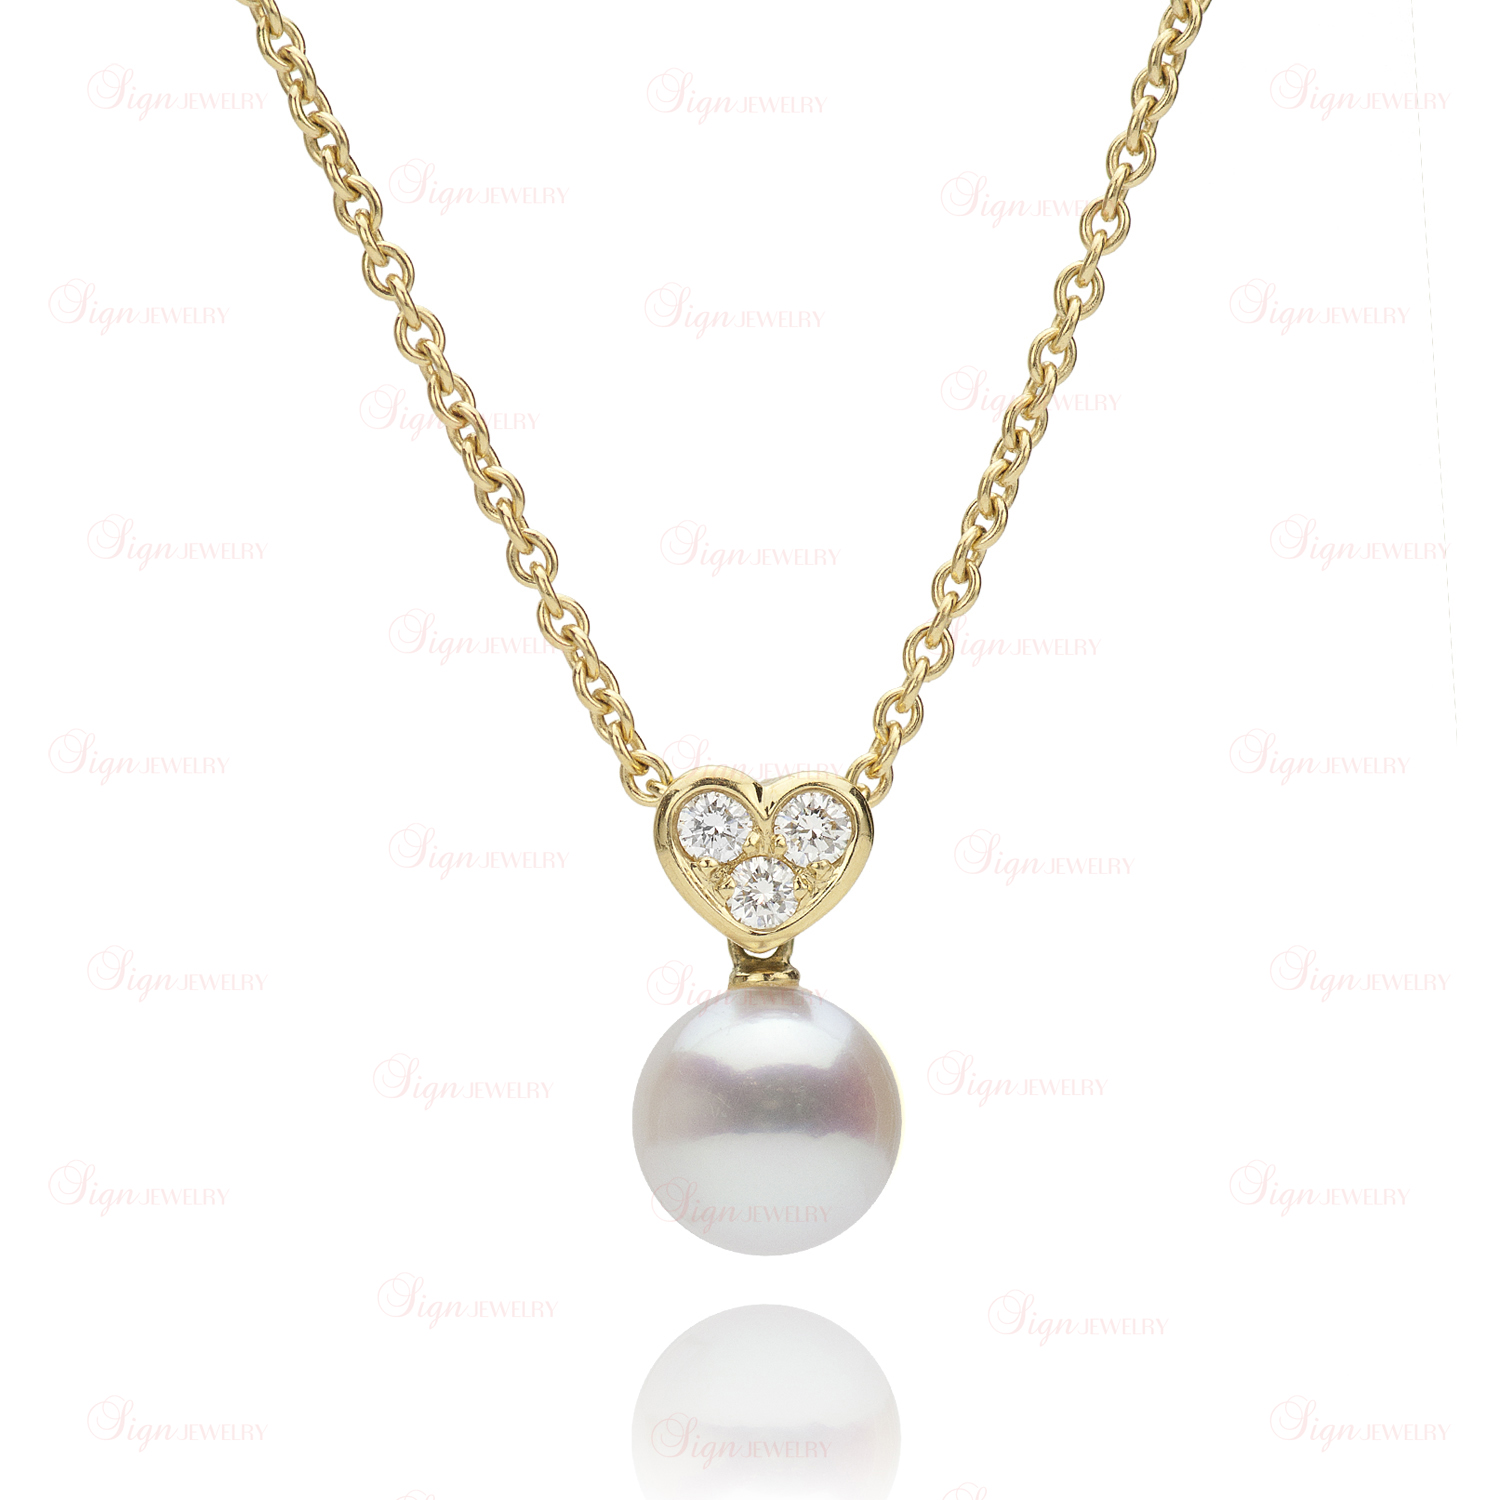 j jewelry made necklaces at gold mikimoto enhancers pp custom master pearl id diamond necklace pendant org